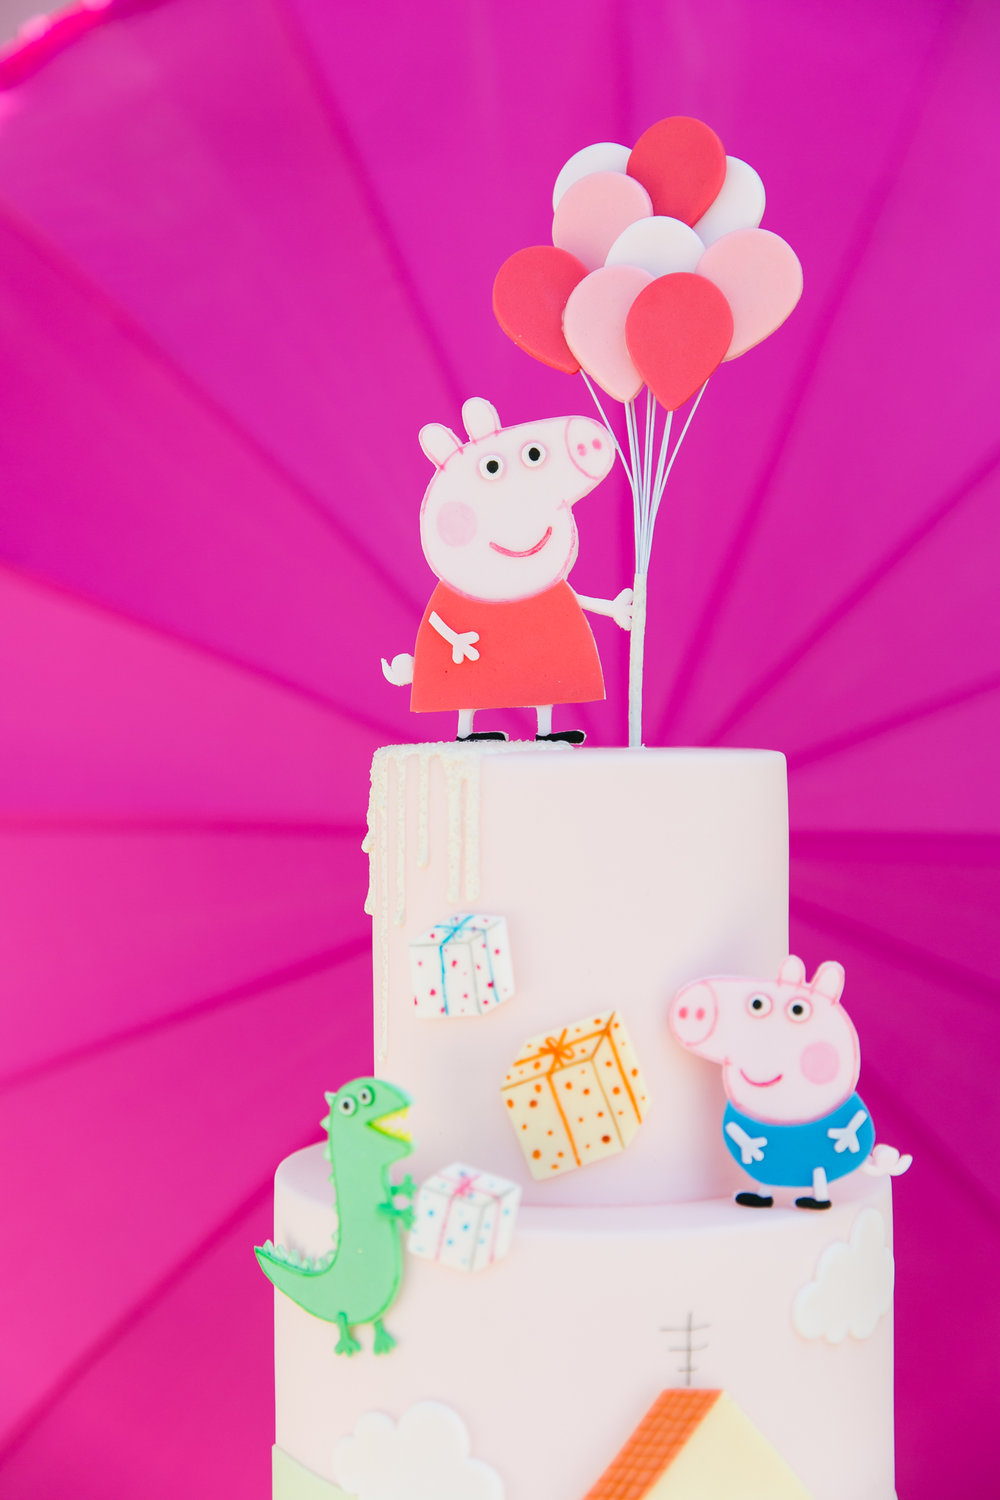 Oui Party - Peppa Pig Party - Peppa Pig Cake.jpg